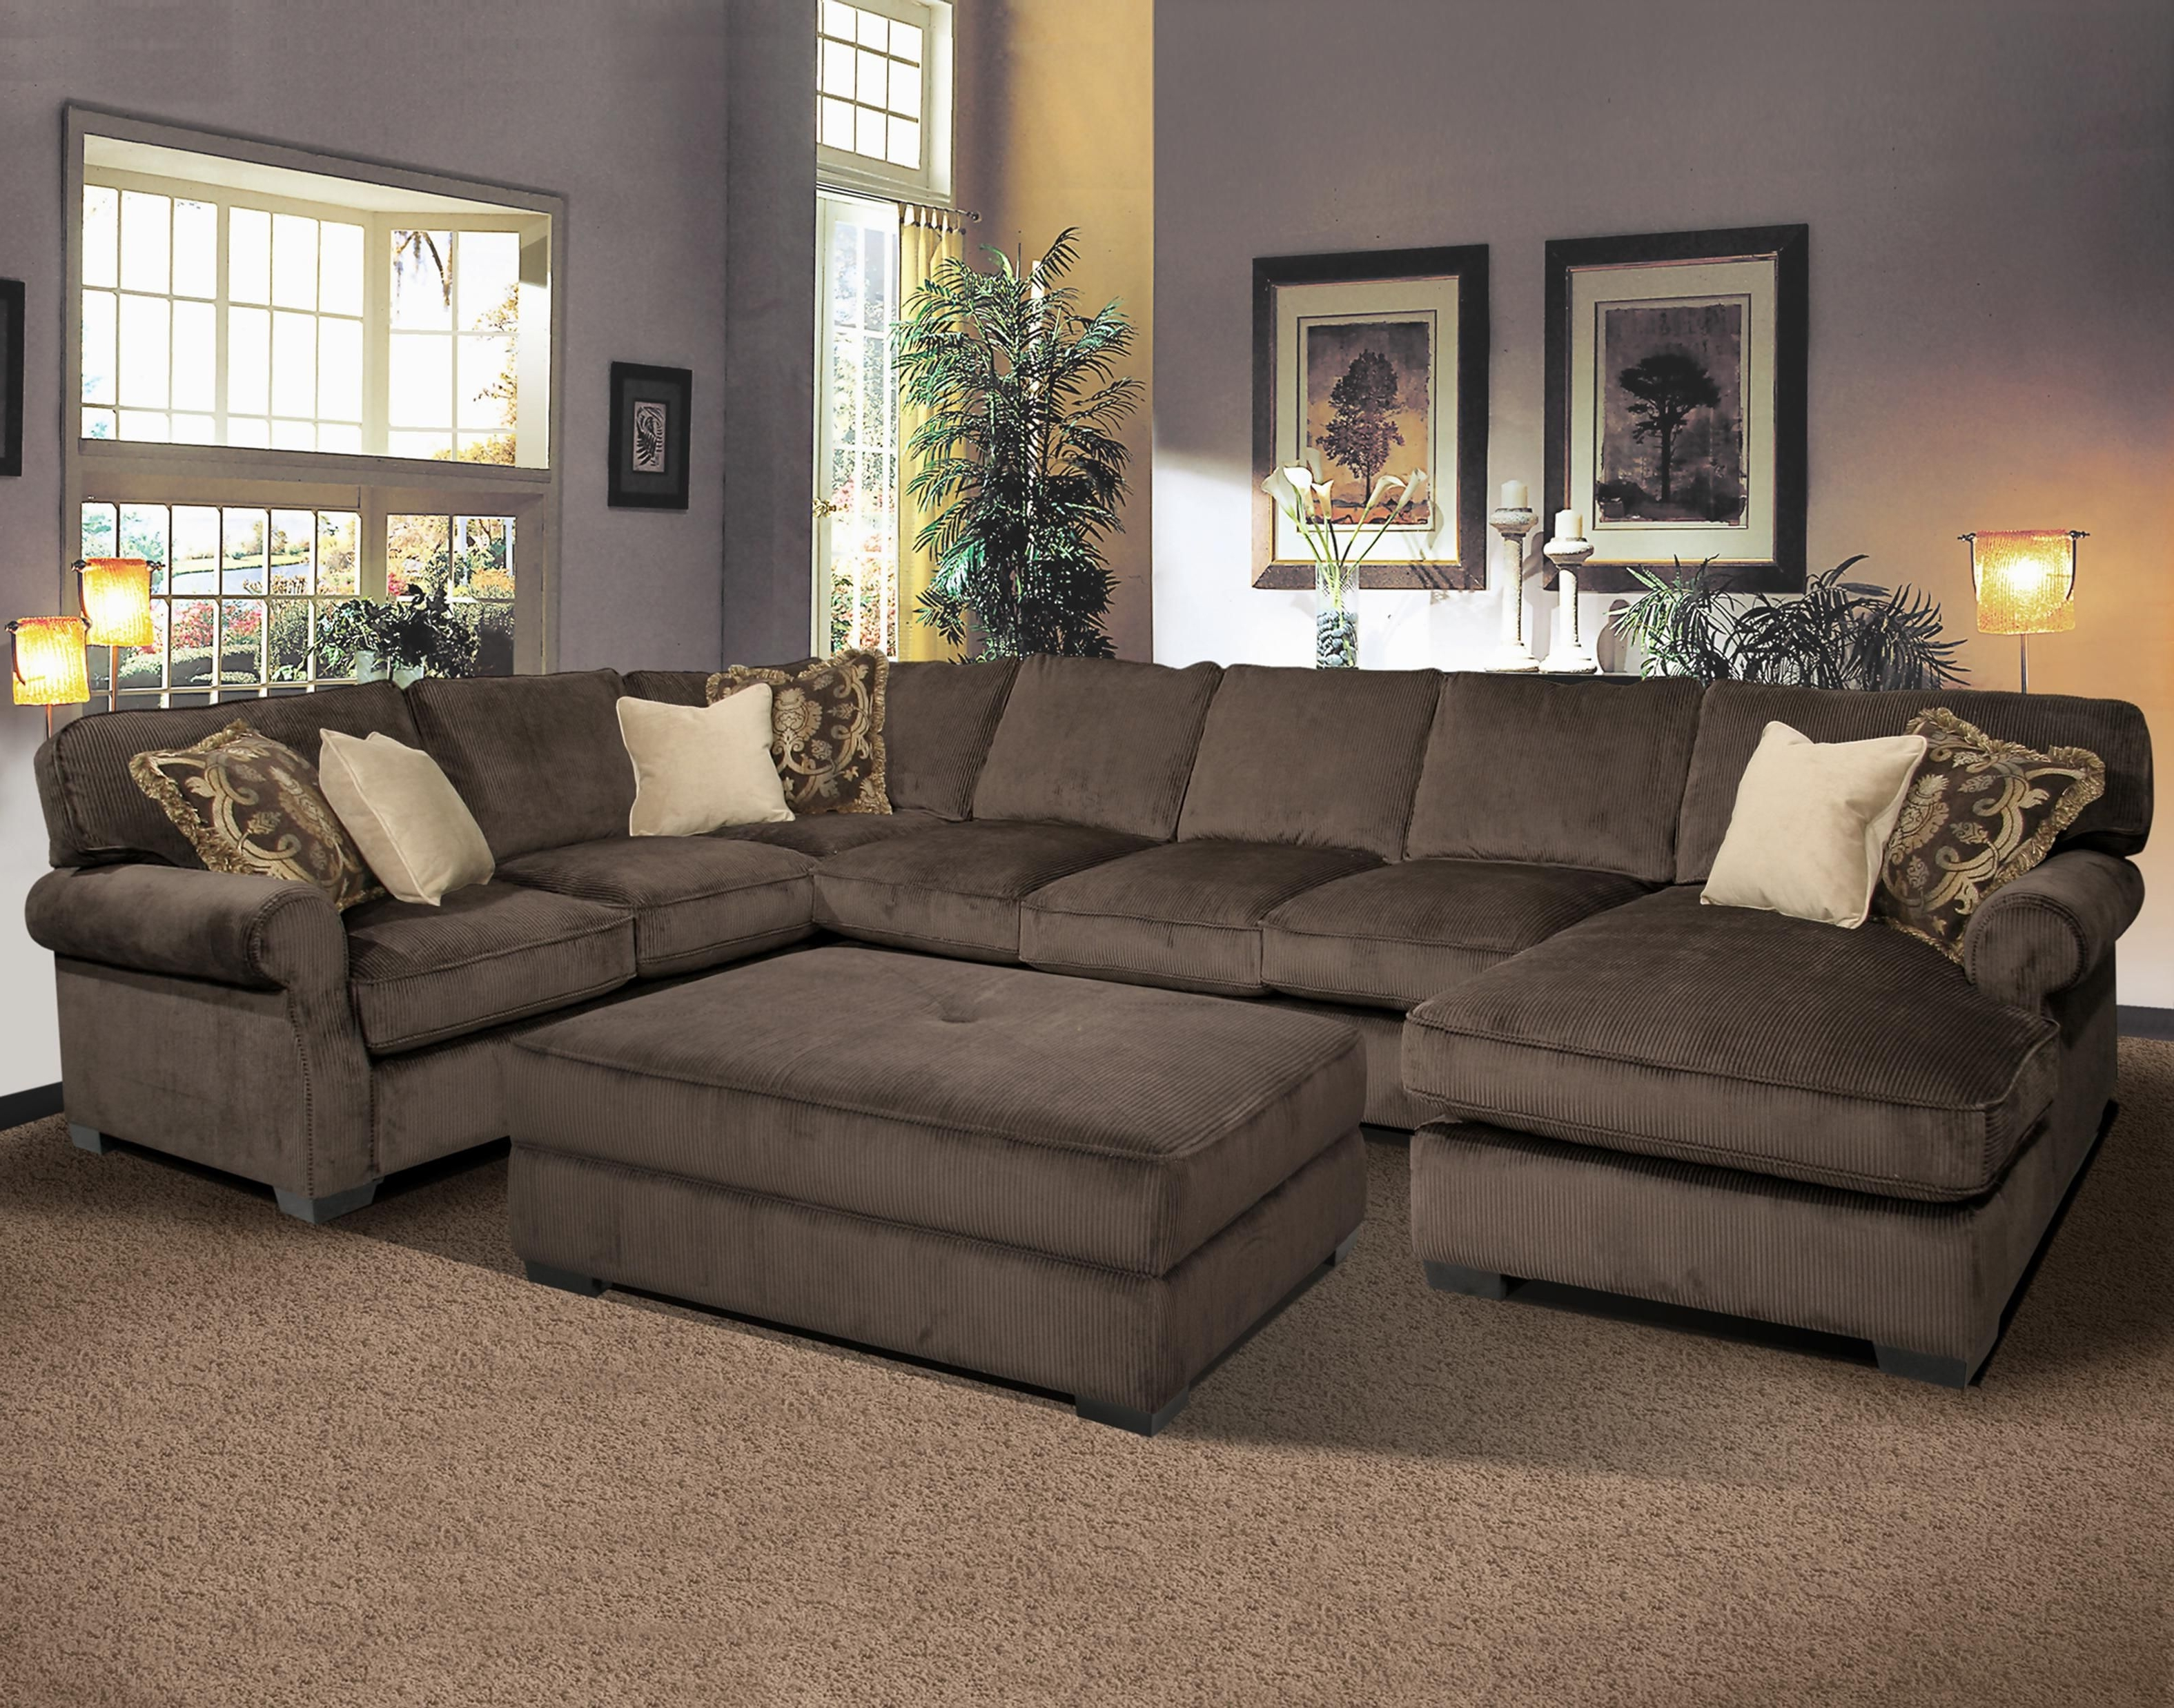 Grand Island Oversized Cocktail Ottoman For Sectional Sofa Throughout Most Up To Date Grand Furniture Sectional Sofas (View 2 of 20)